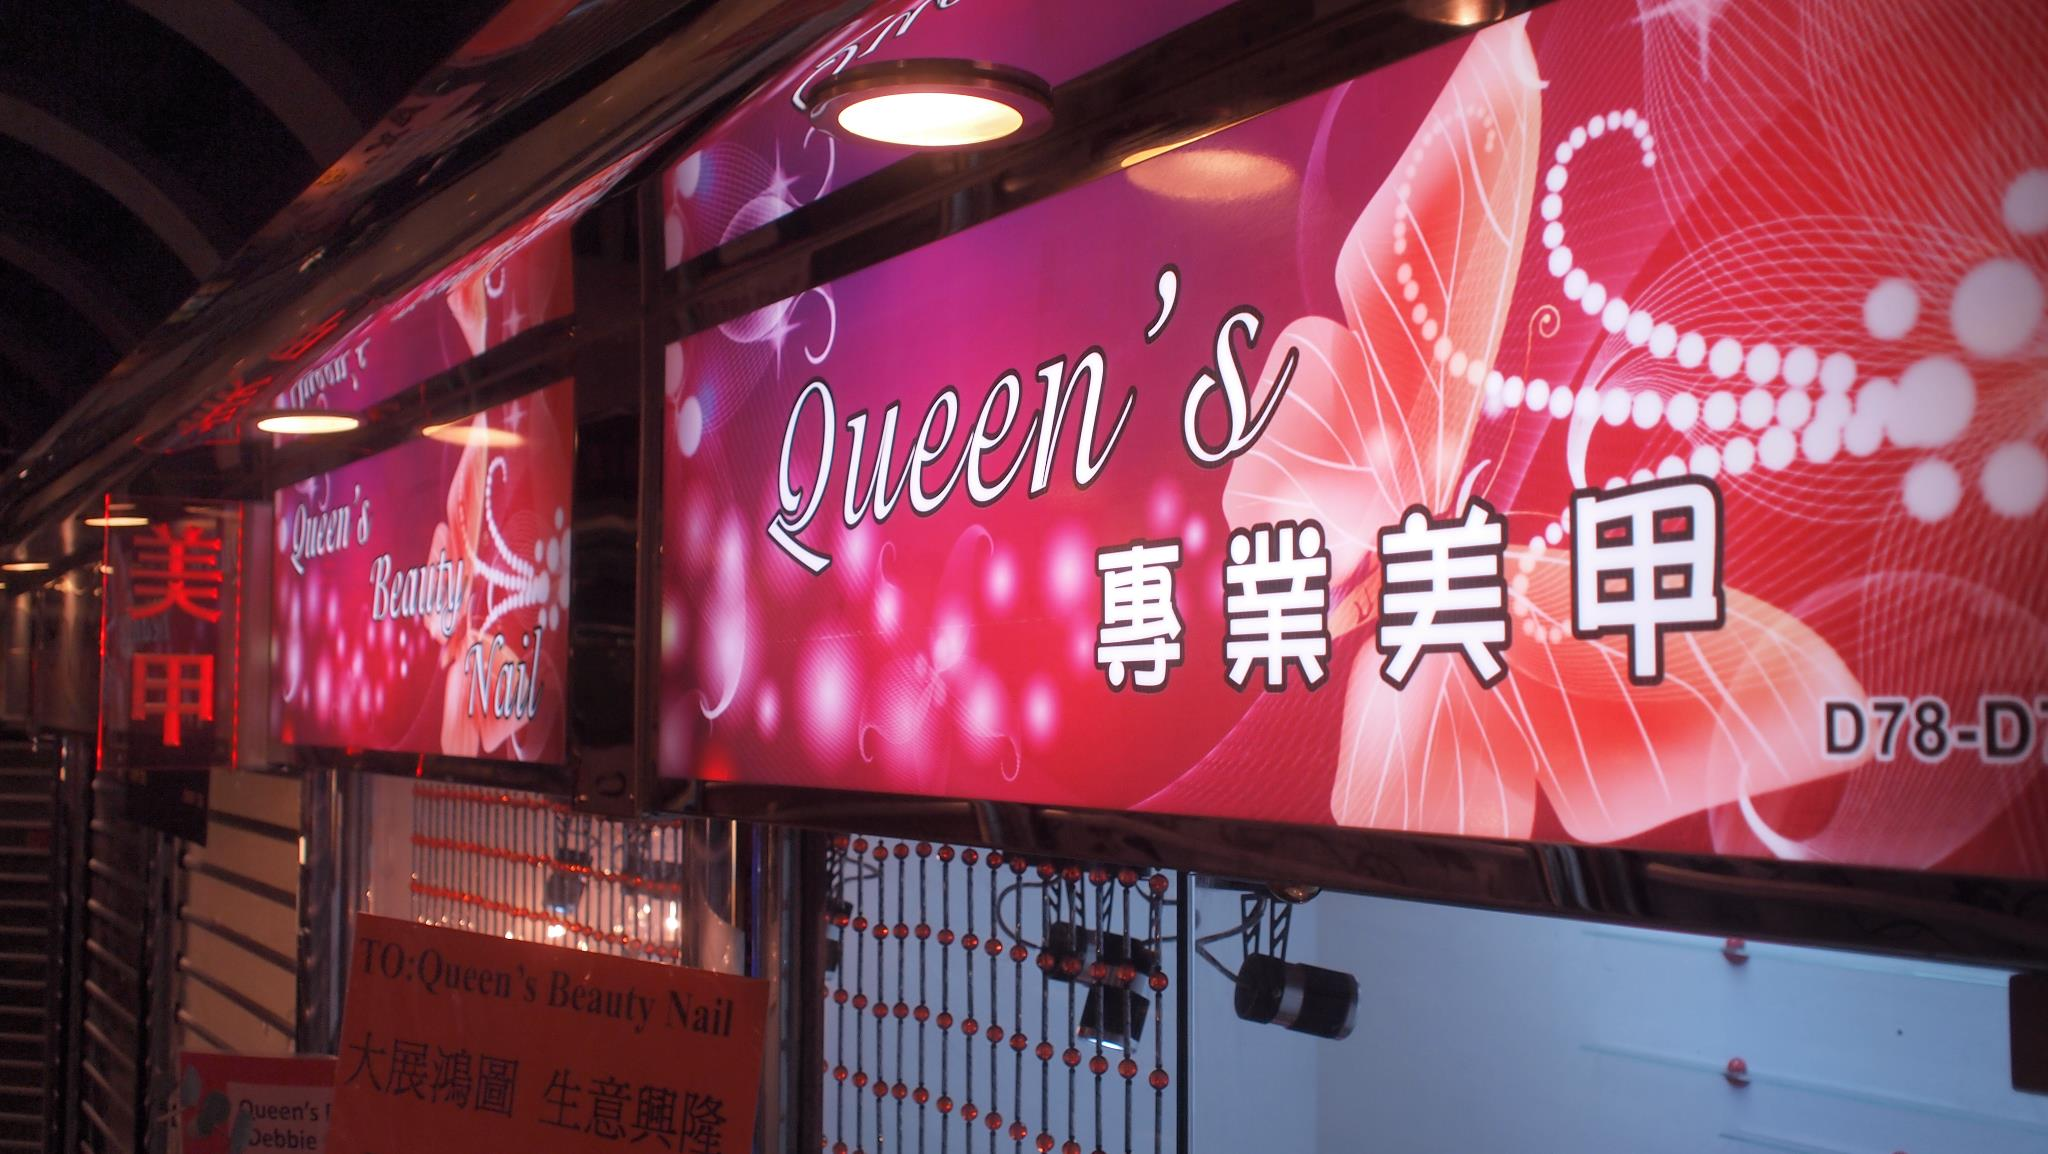 美容院: Queen's beauty nail